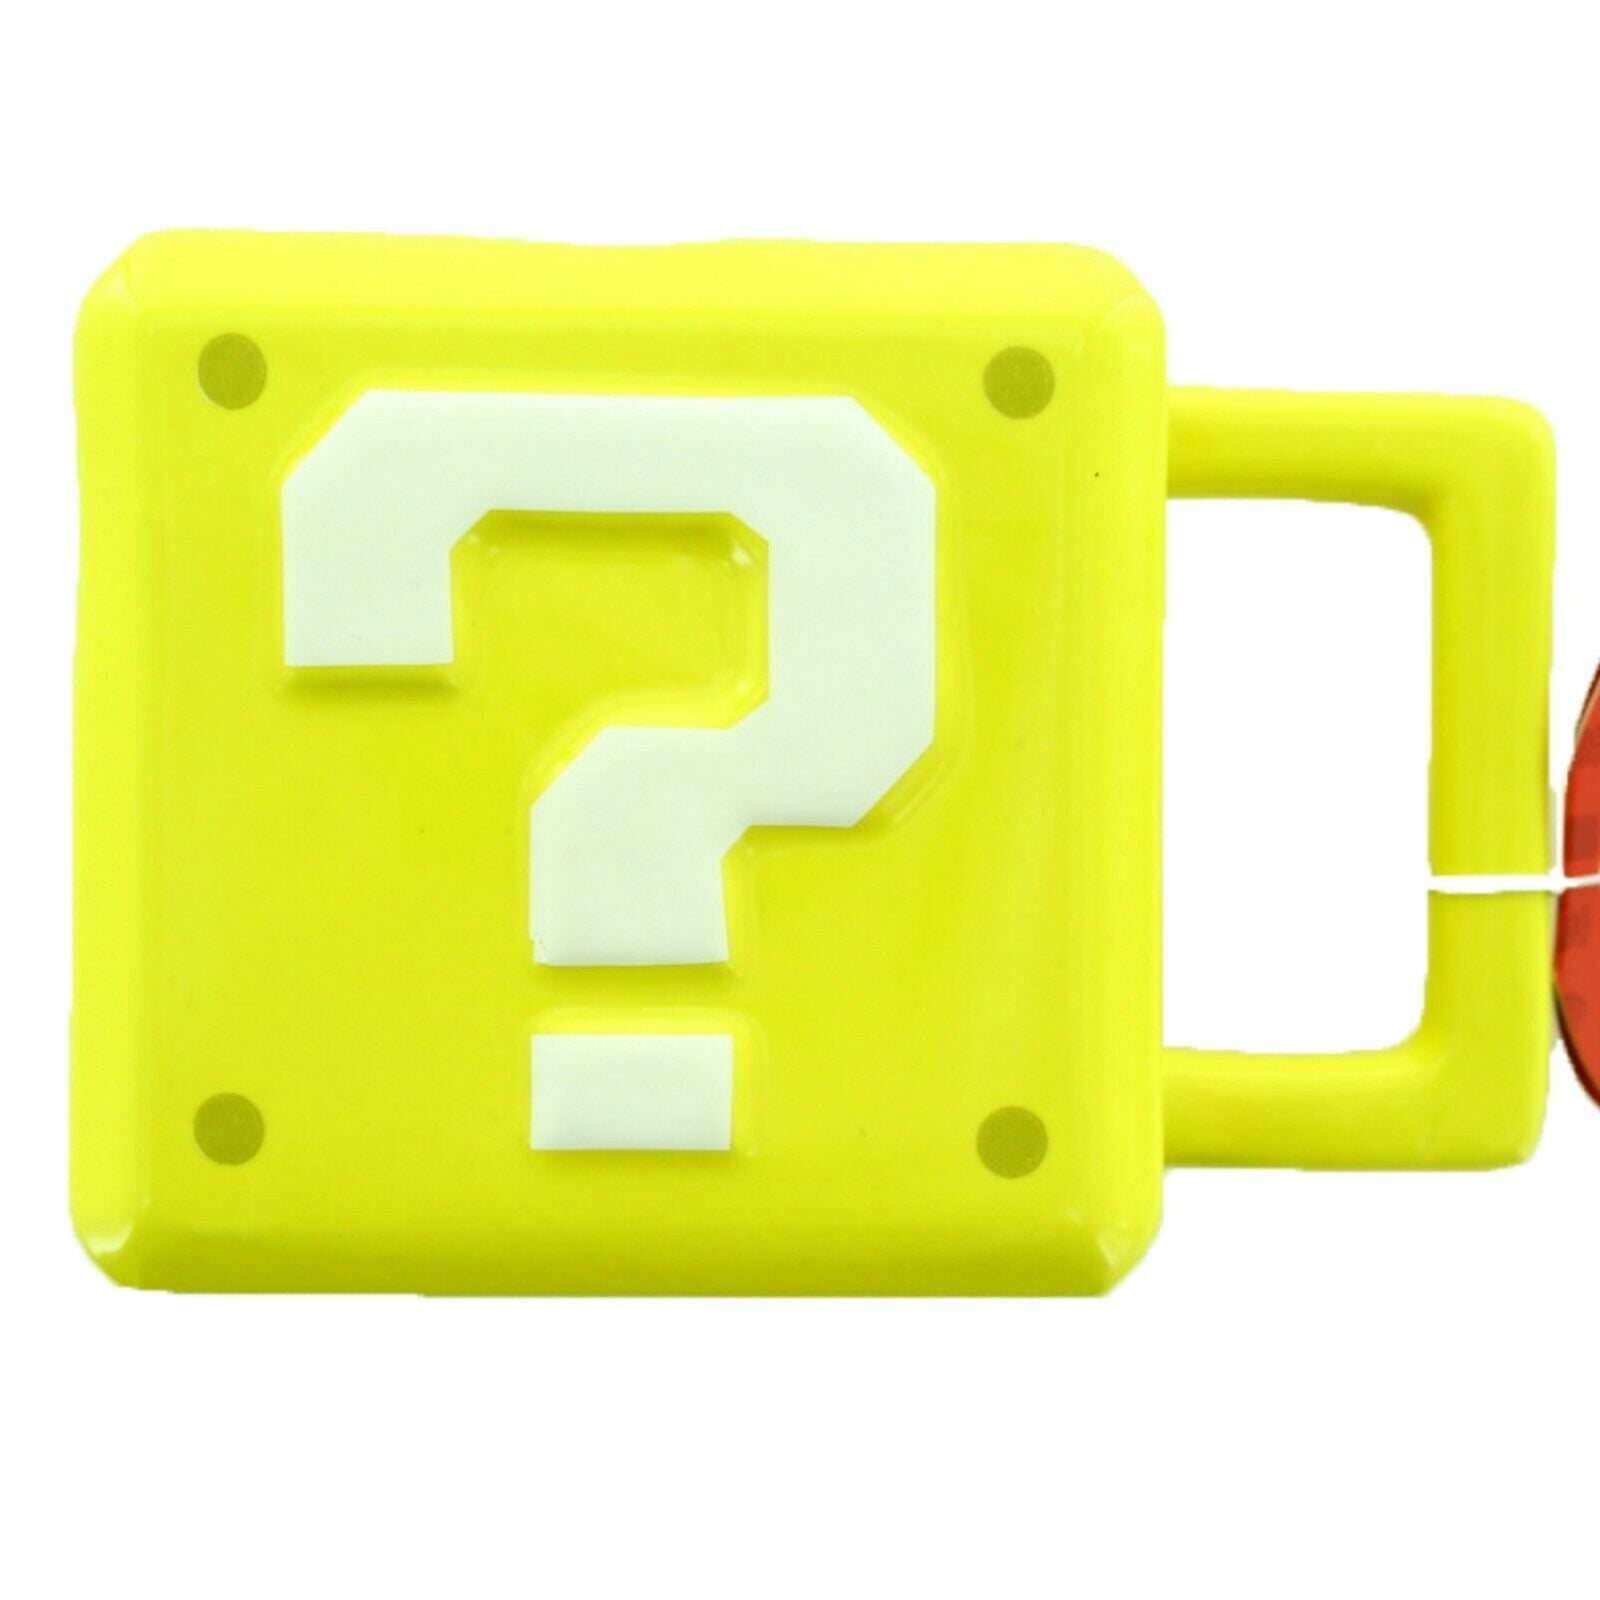 Super Mario Brothers Question Block Geek Gift Ceramic Coffee Mug